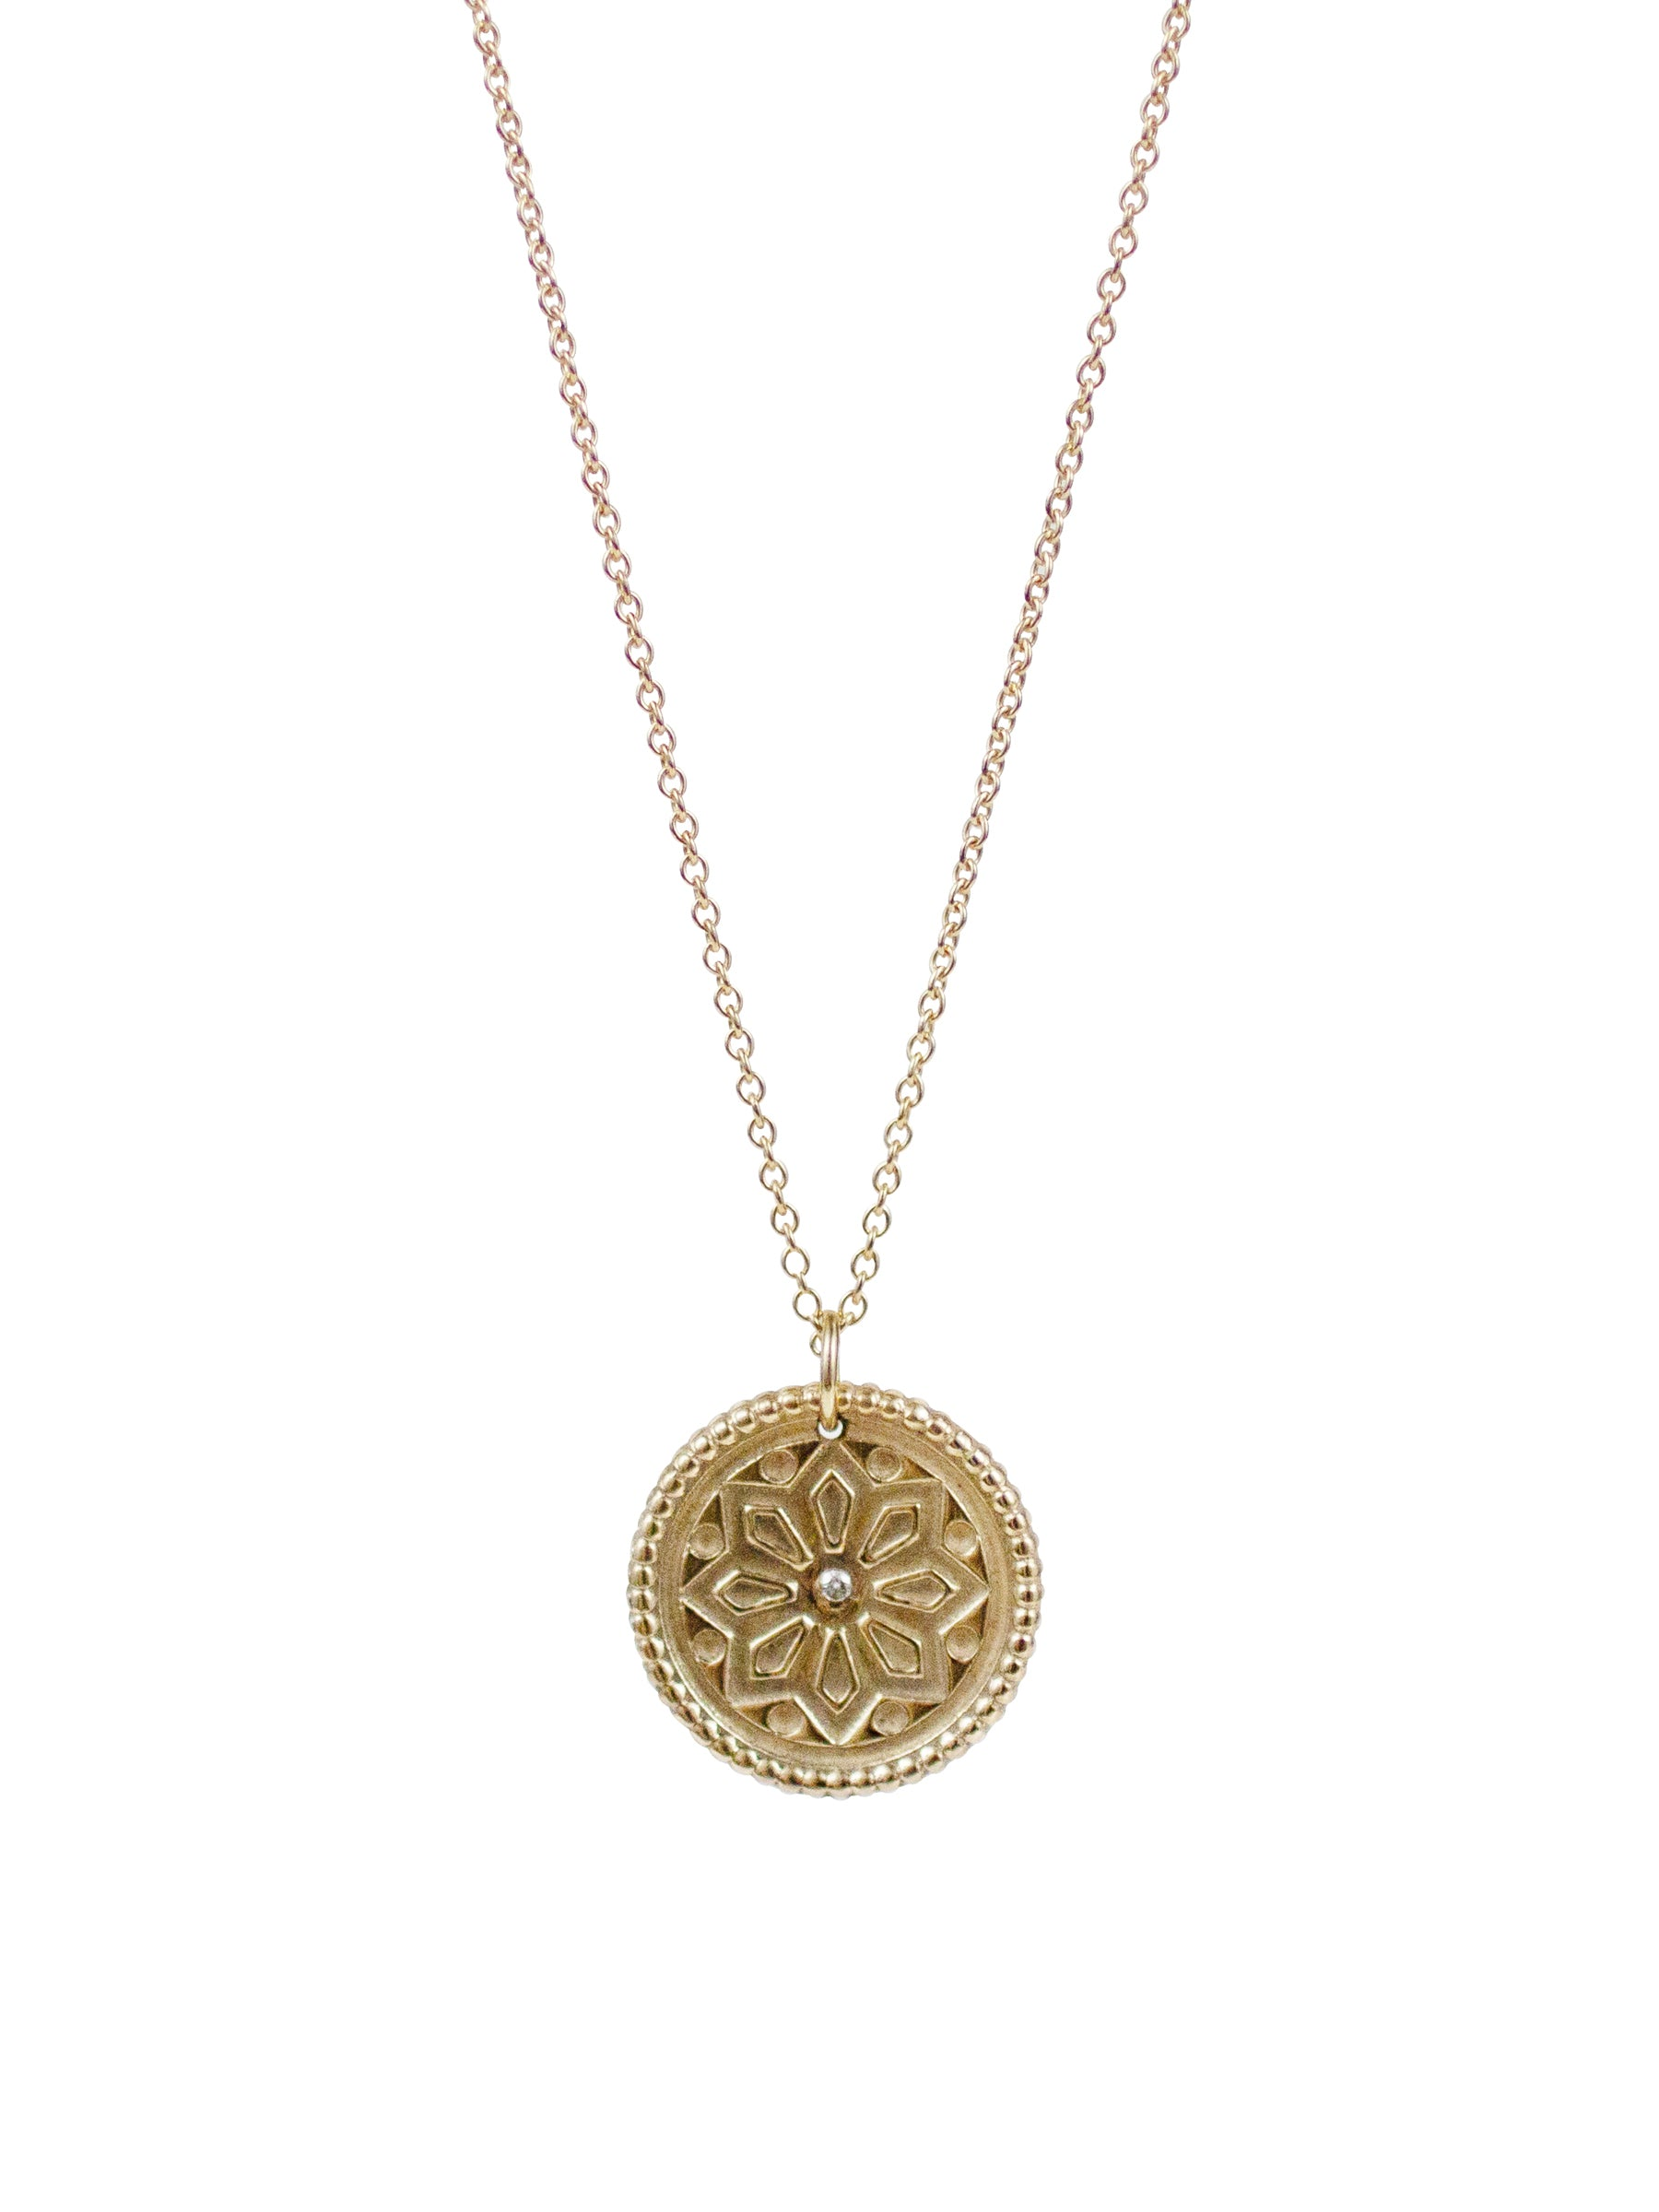 SUN LOTUS NECKLACE